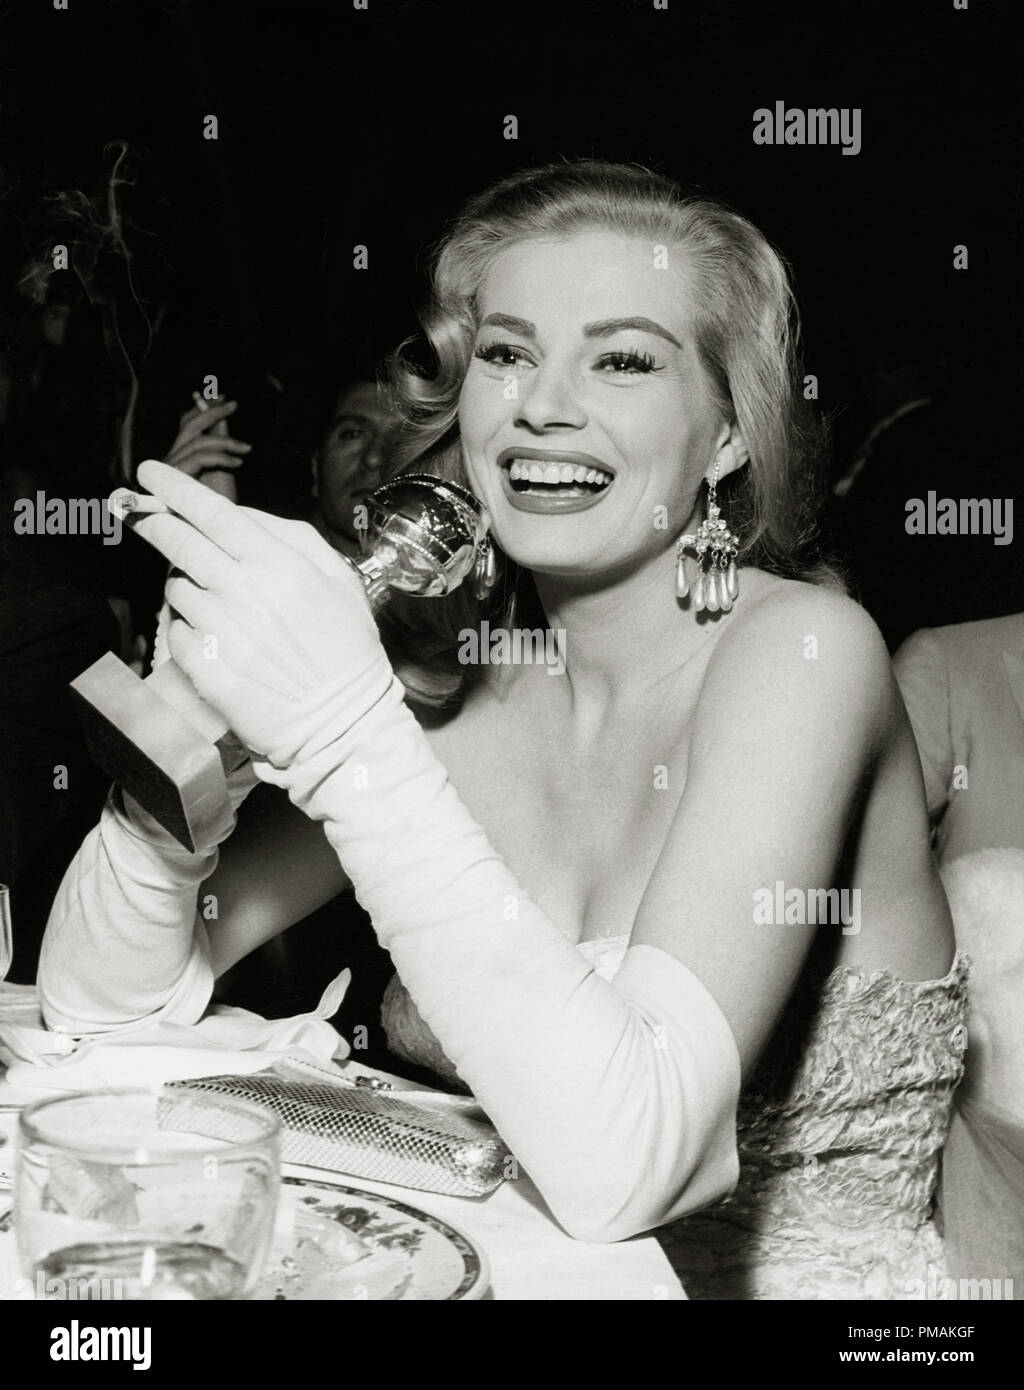 Anita Ekberg with her Golden Globe award (New Star of the Year Actress)  during the 13th Golden Globe Awards held at the Cocoanut Grove Nightclub in Los Angeles, CA, February 23, 1956  File Reference # 33300_505THA - Stock Image